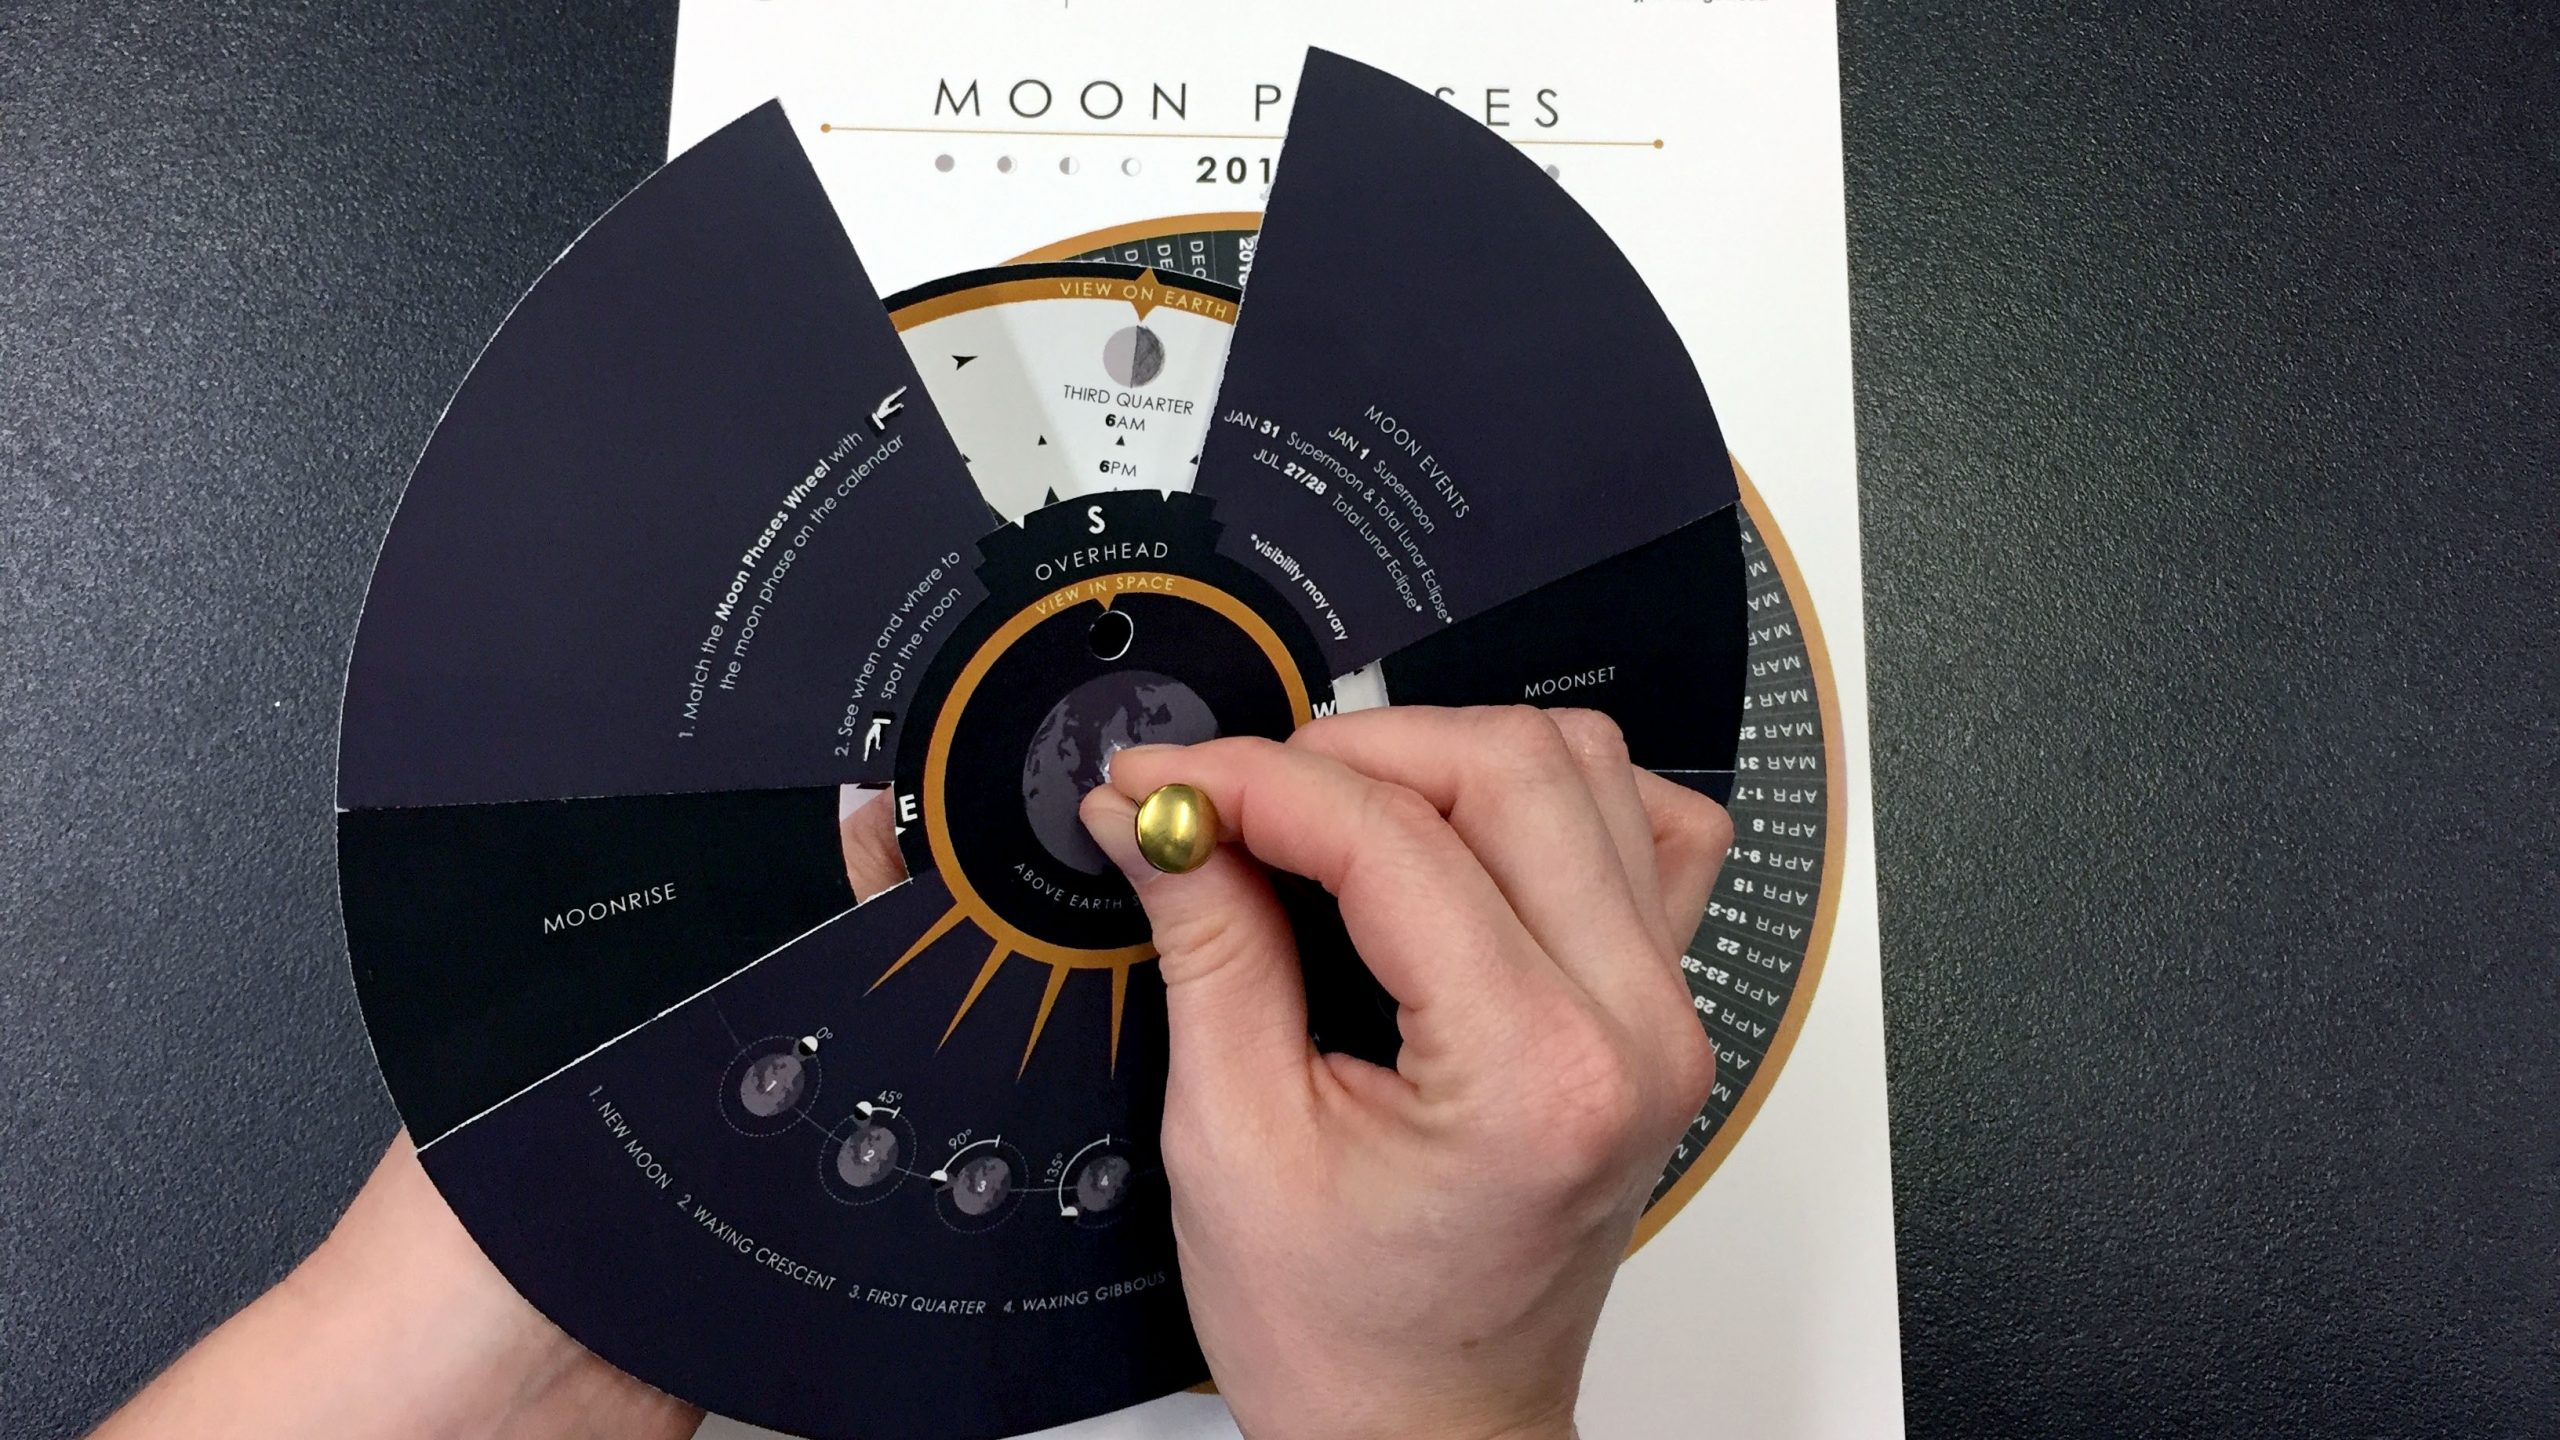 Educator Guide: Make A Moon Phases Calendar And Calculator